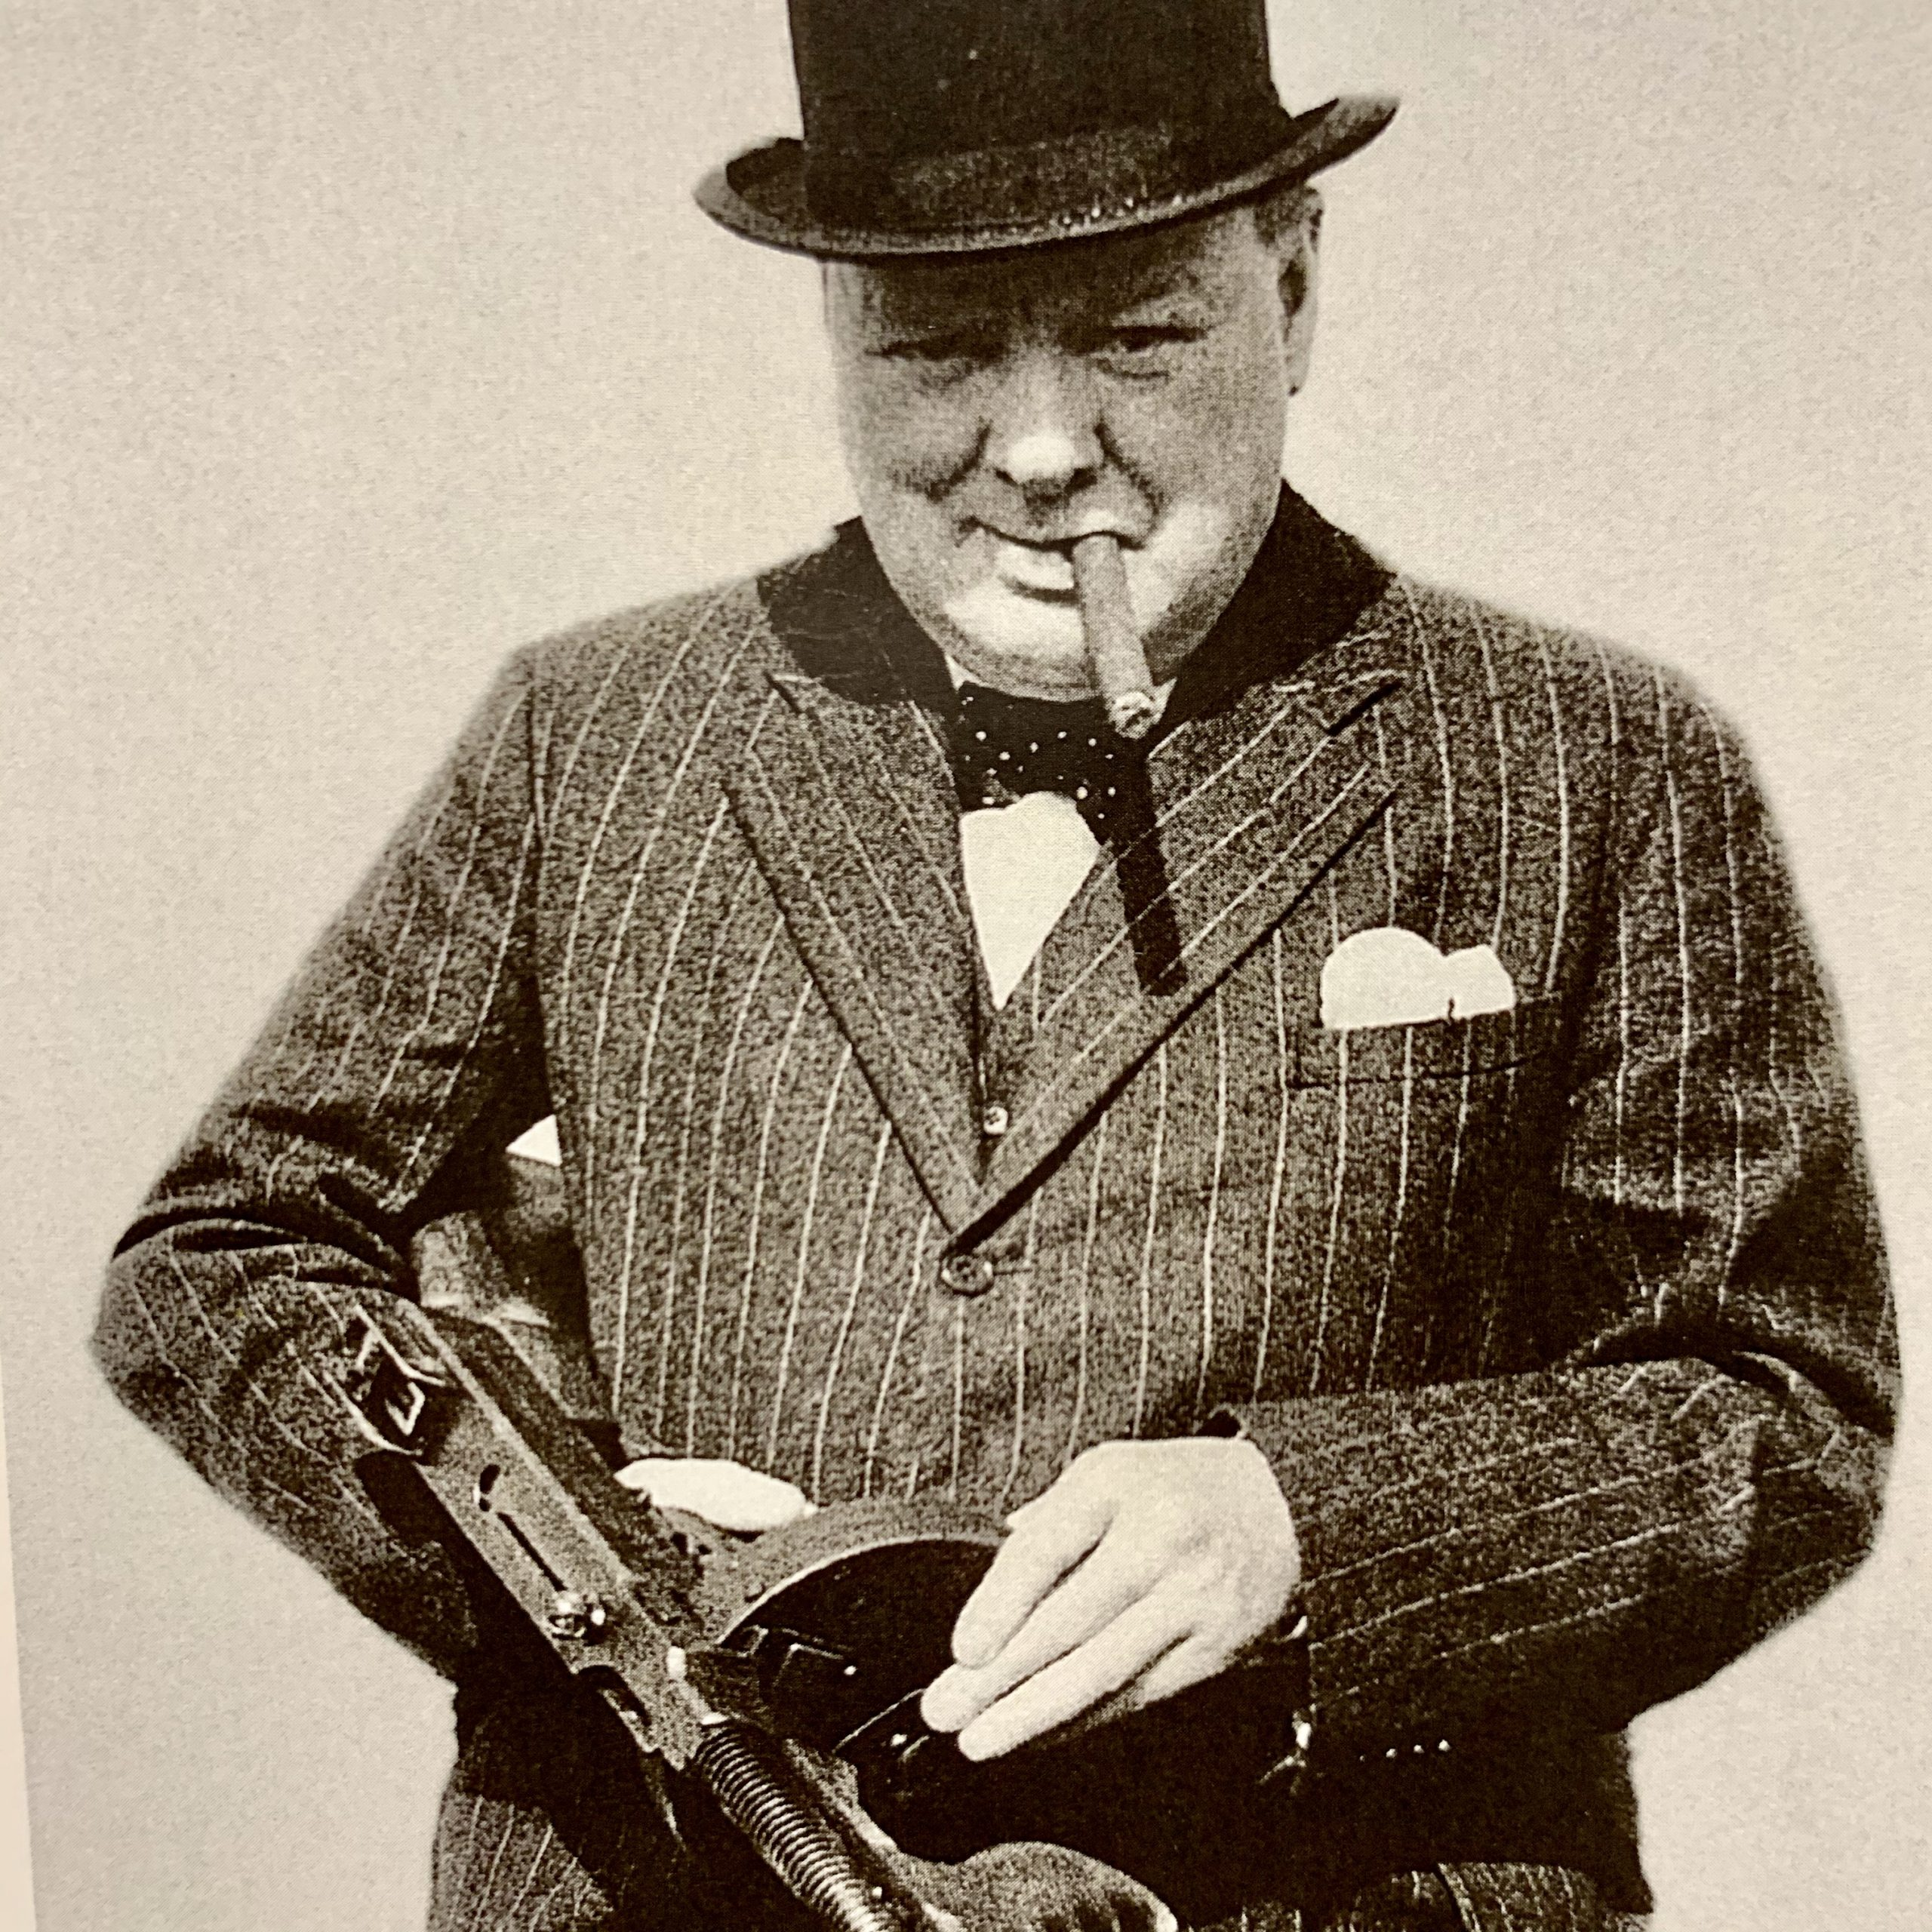 Photograph of Winston Churchill holding a gun